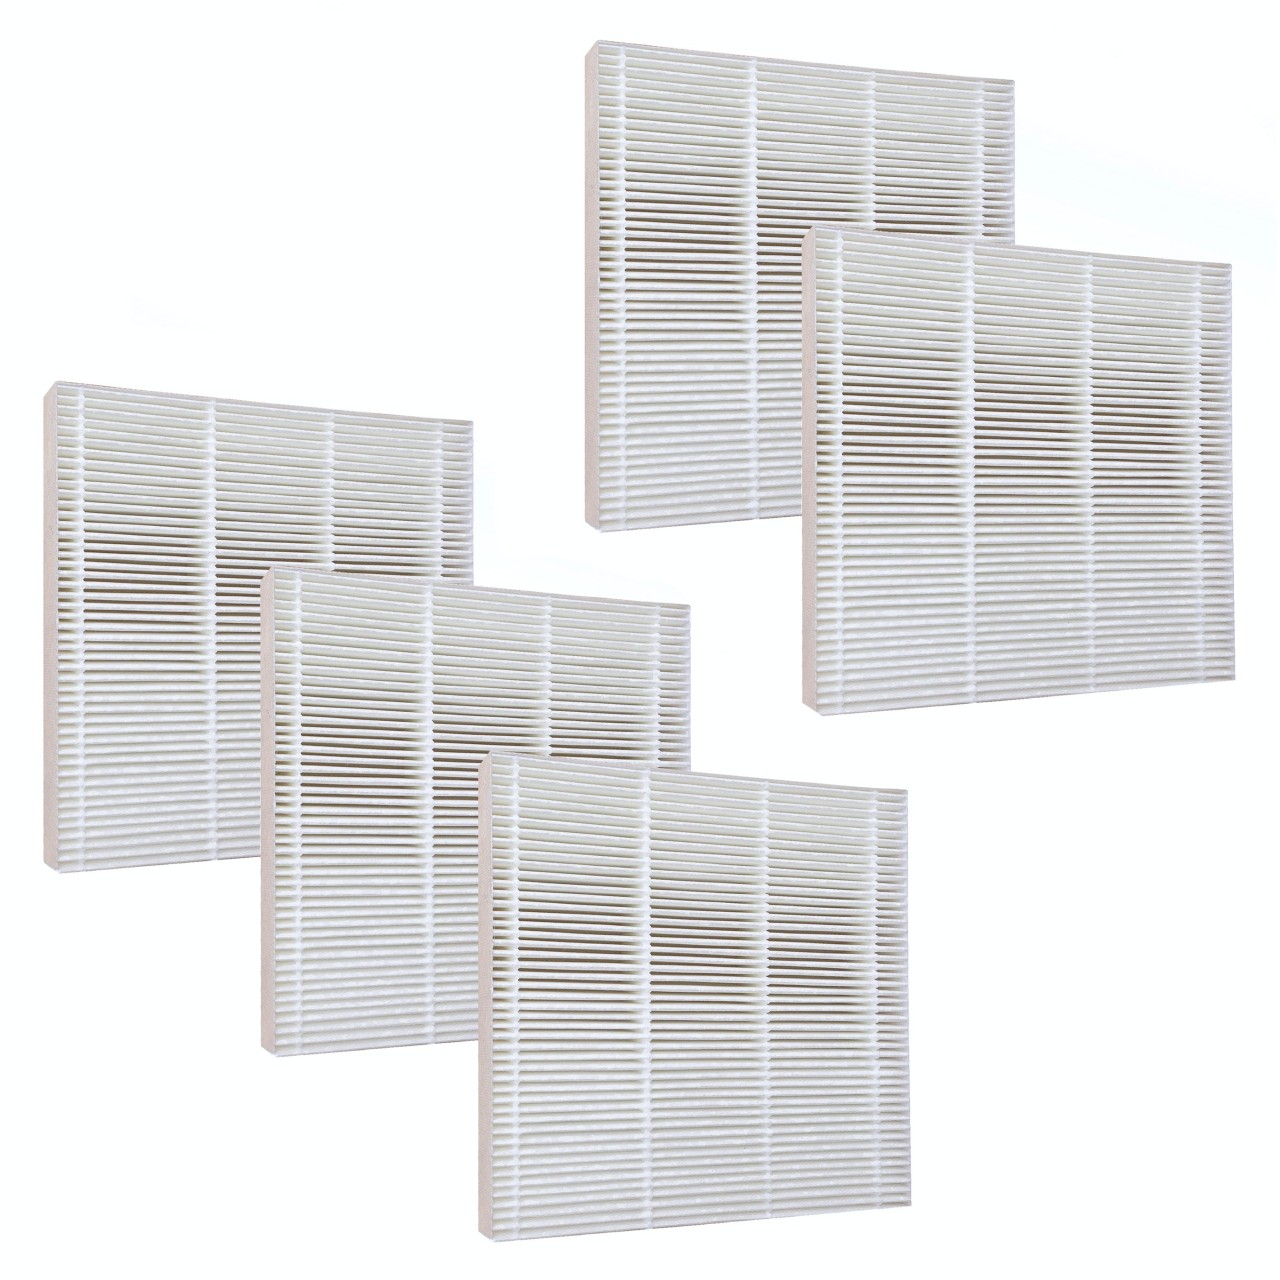 5 hepa filters for fresh air by ecoquest air purifier